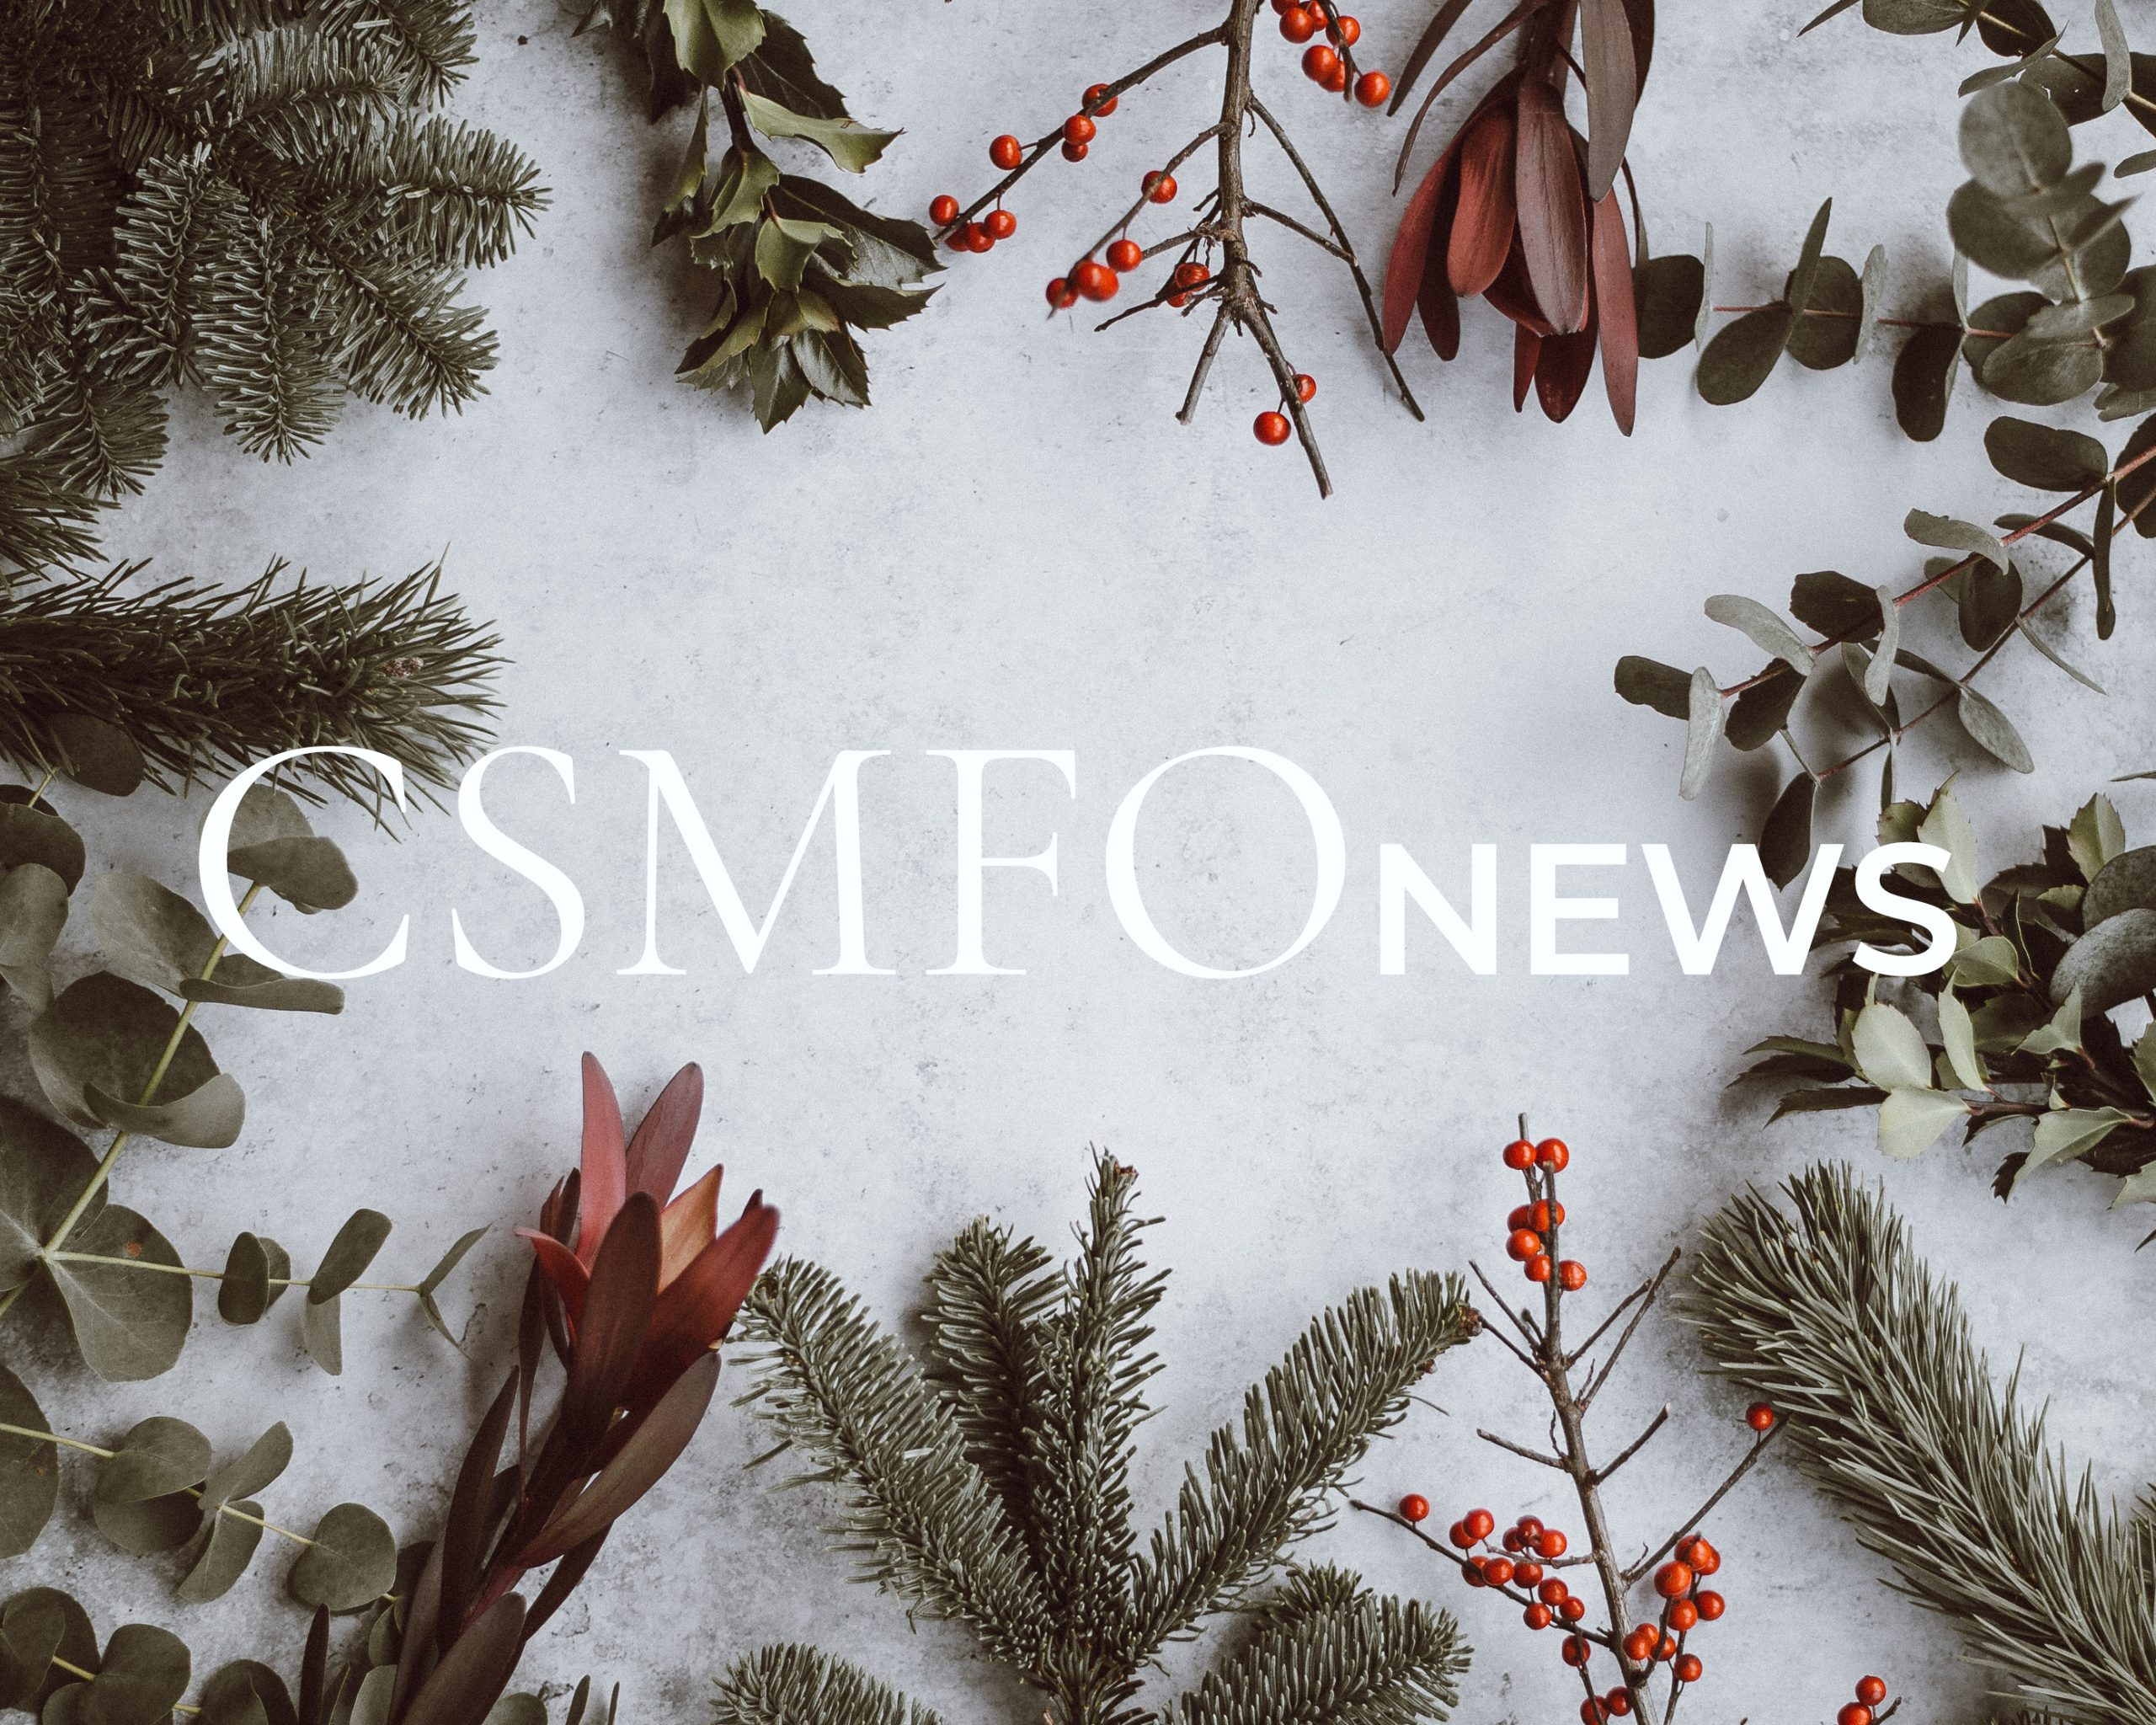 Editor's Alley | December 2019 | 15 Days Of CSMFO News